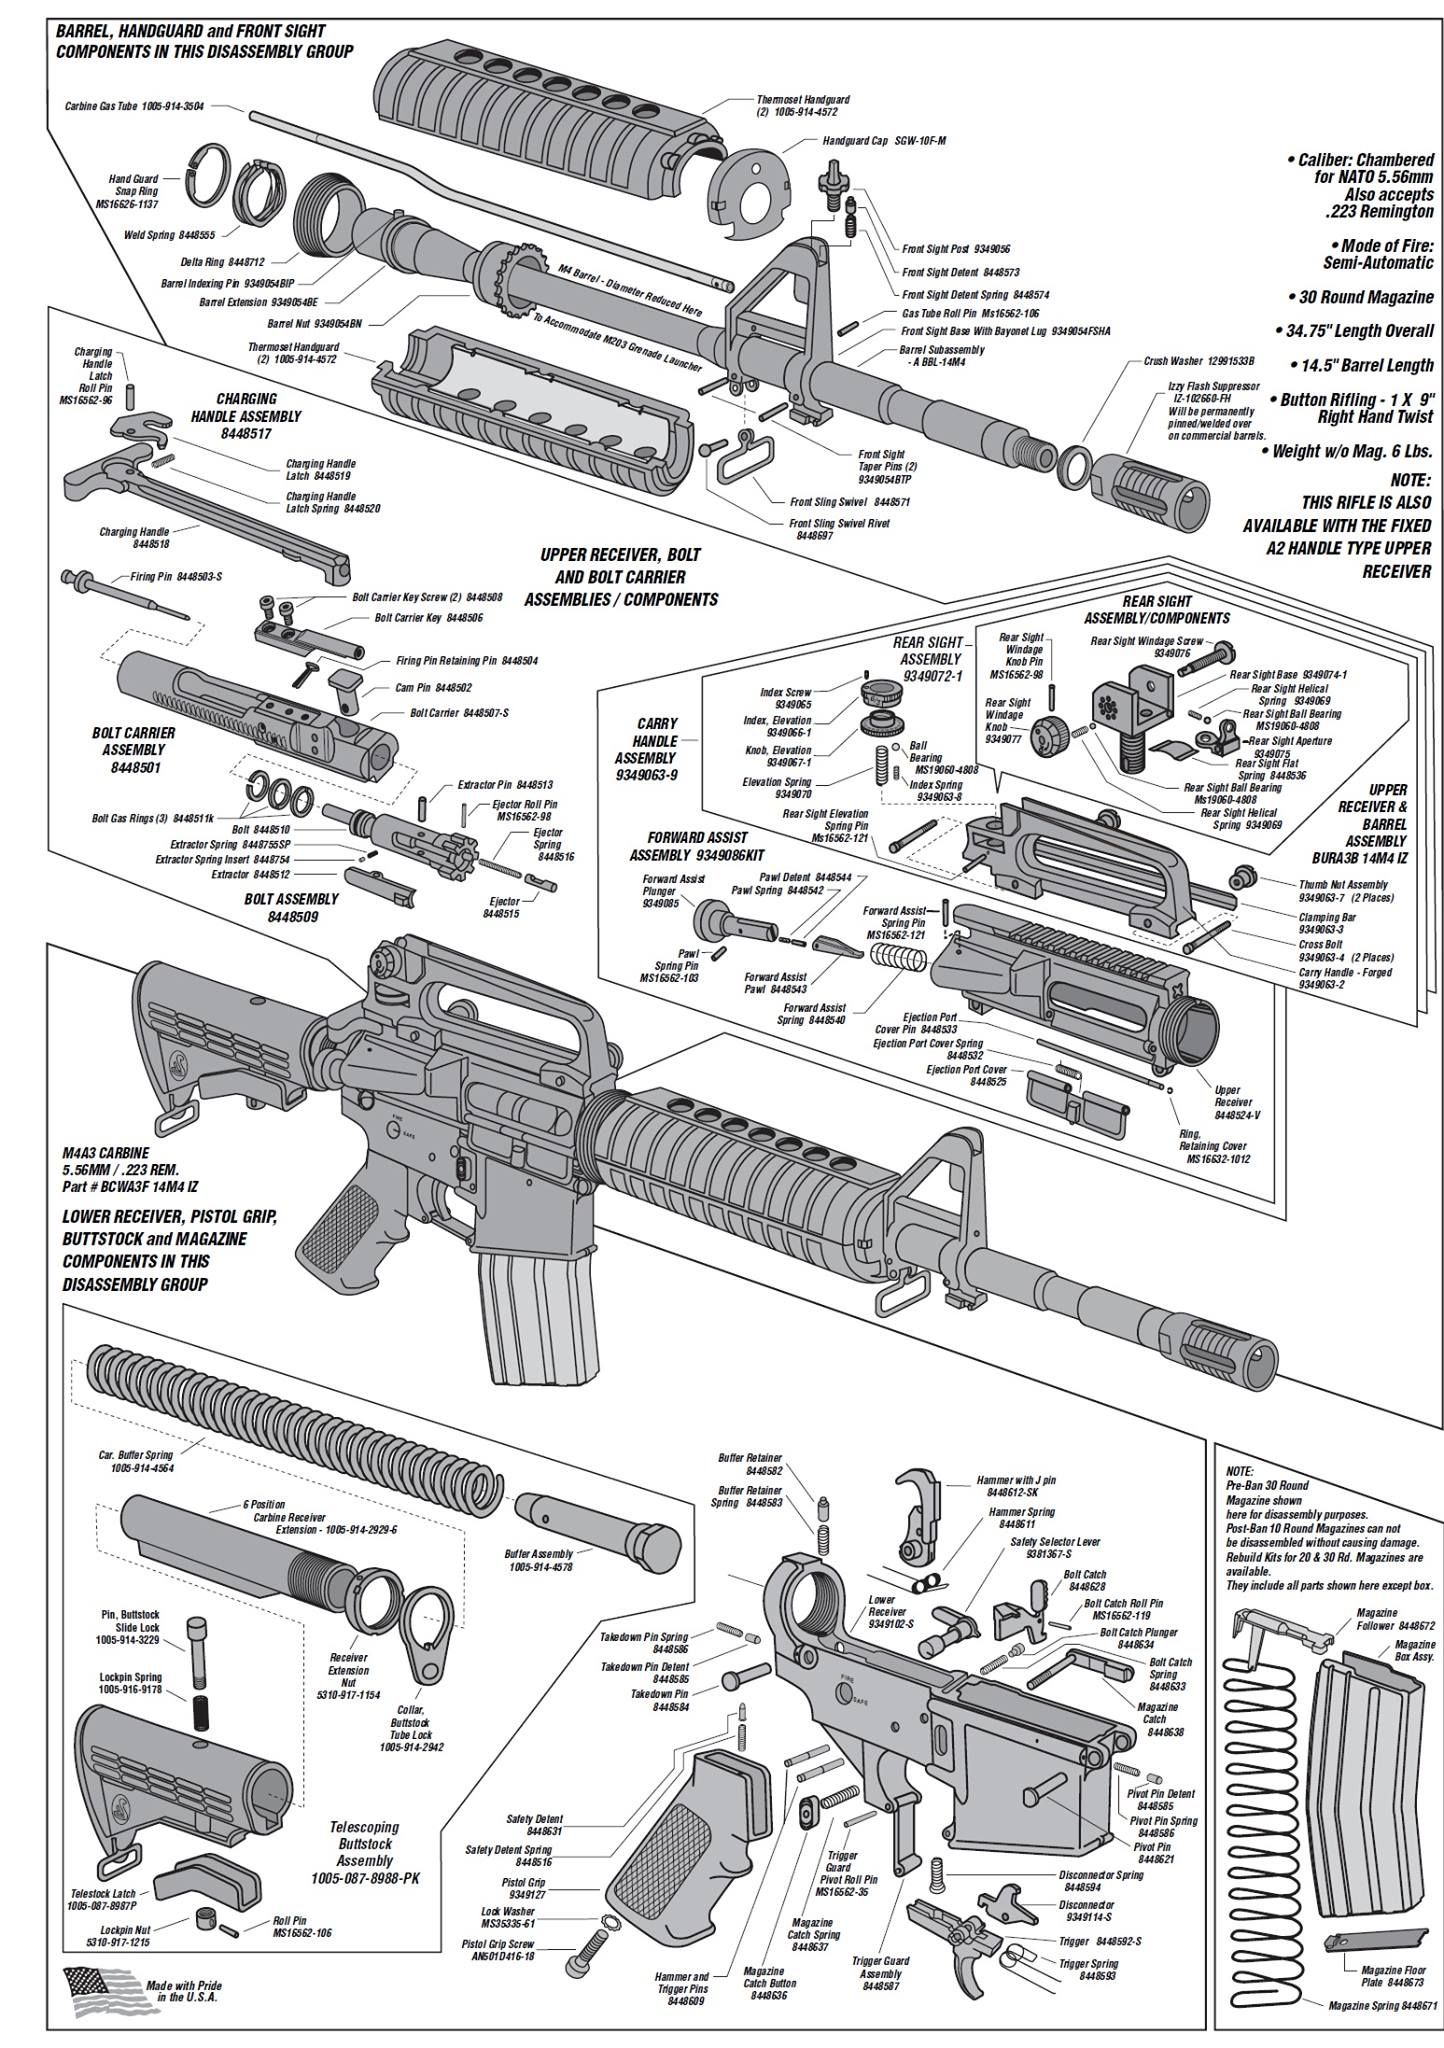 small resolution of parts breakdown ar 15